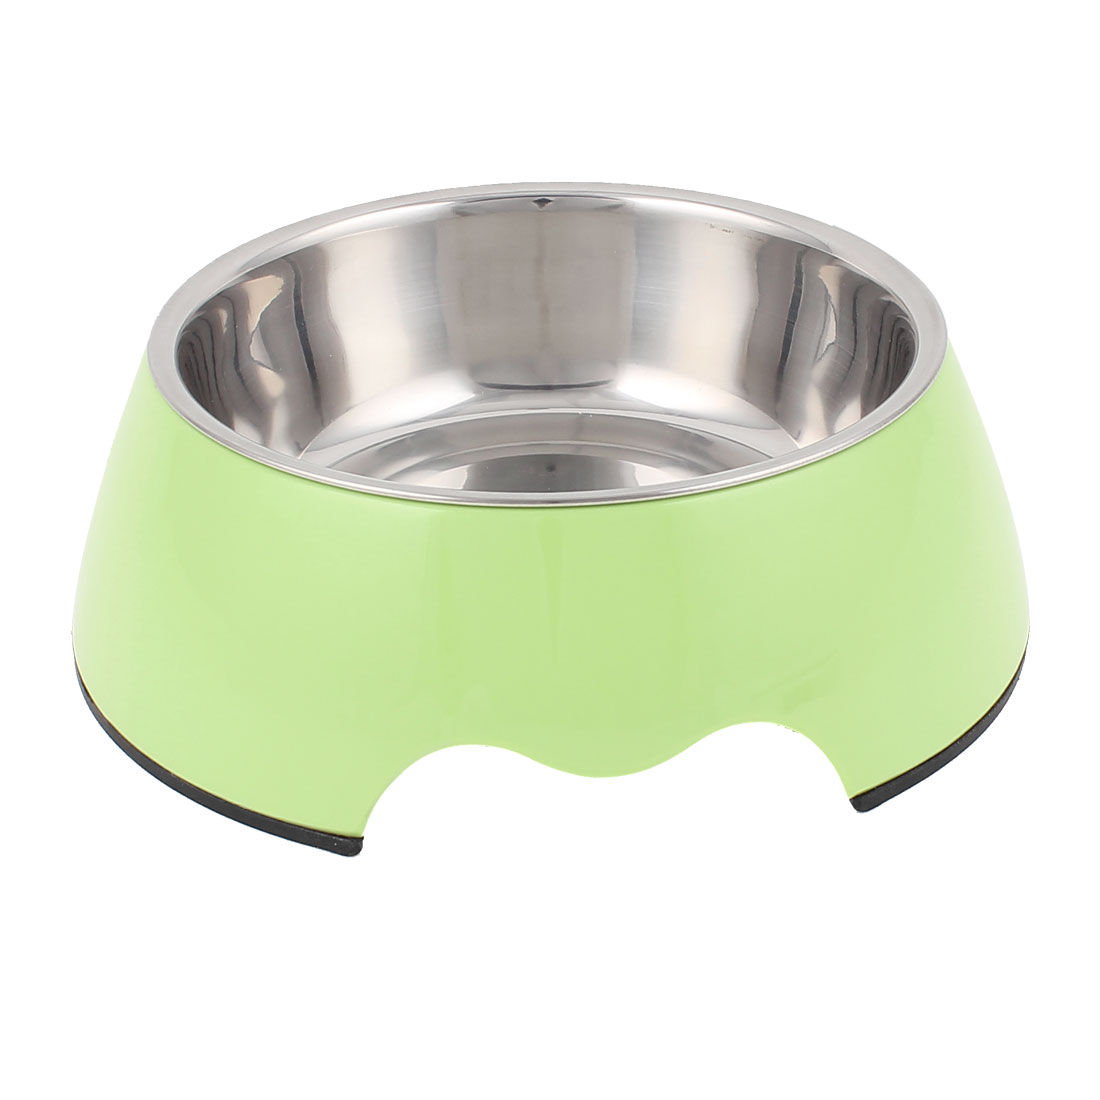 Pet Cat Dog Puppy Stainless Steel Dish Food Water Feeding Feeder Bowl Green